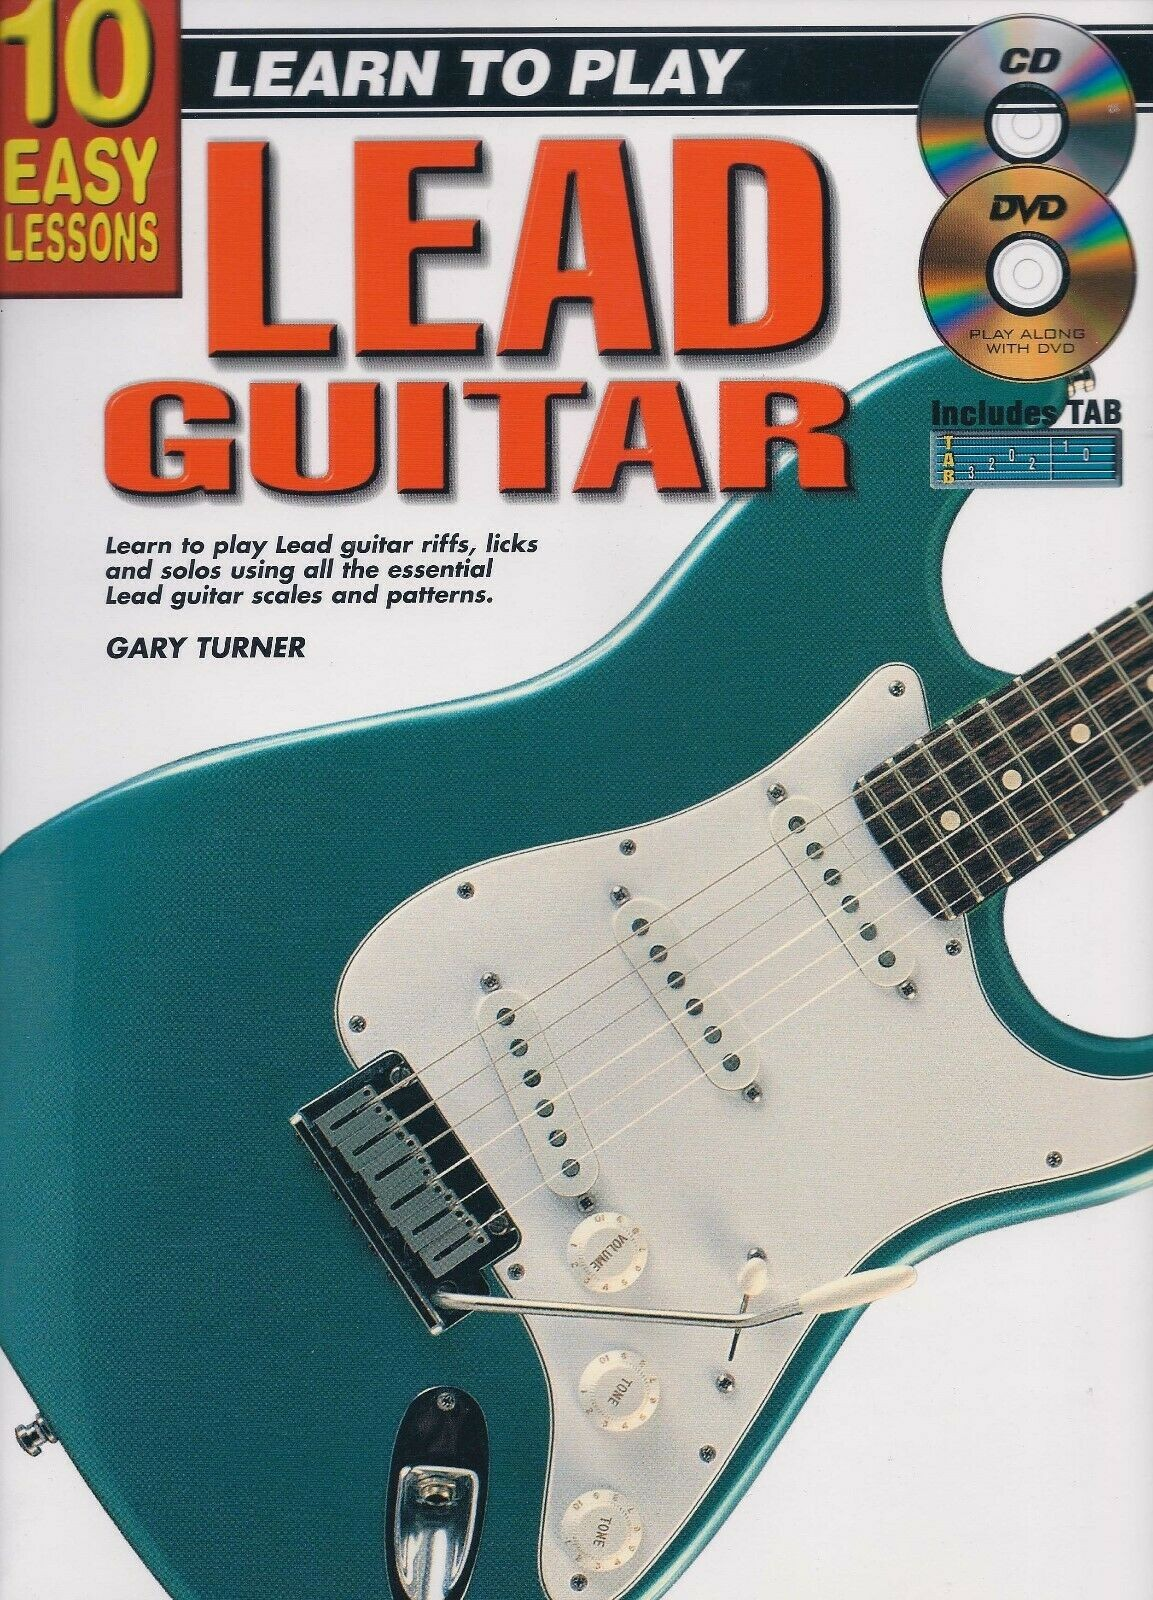 Learn To Play Guitar Electric Lead Music Tutor Book CD & DVD 10 Easy Lessons G2